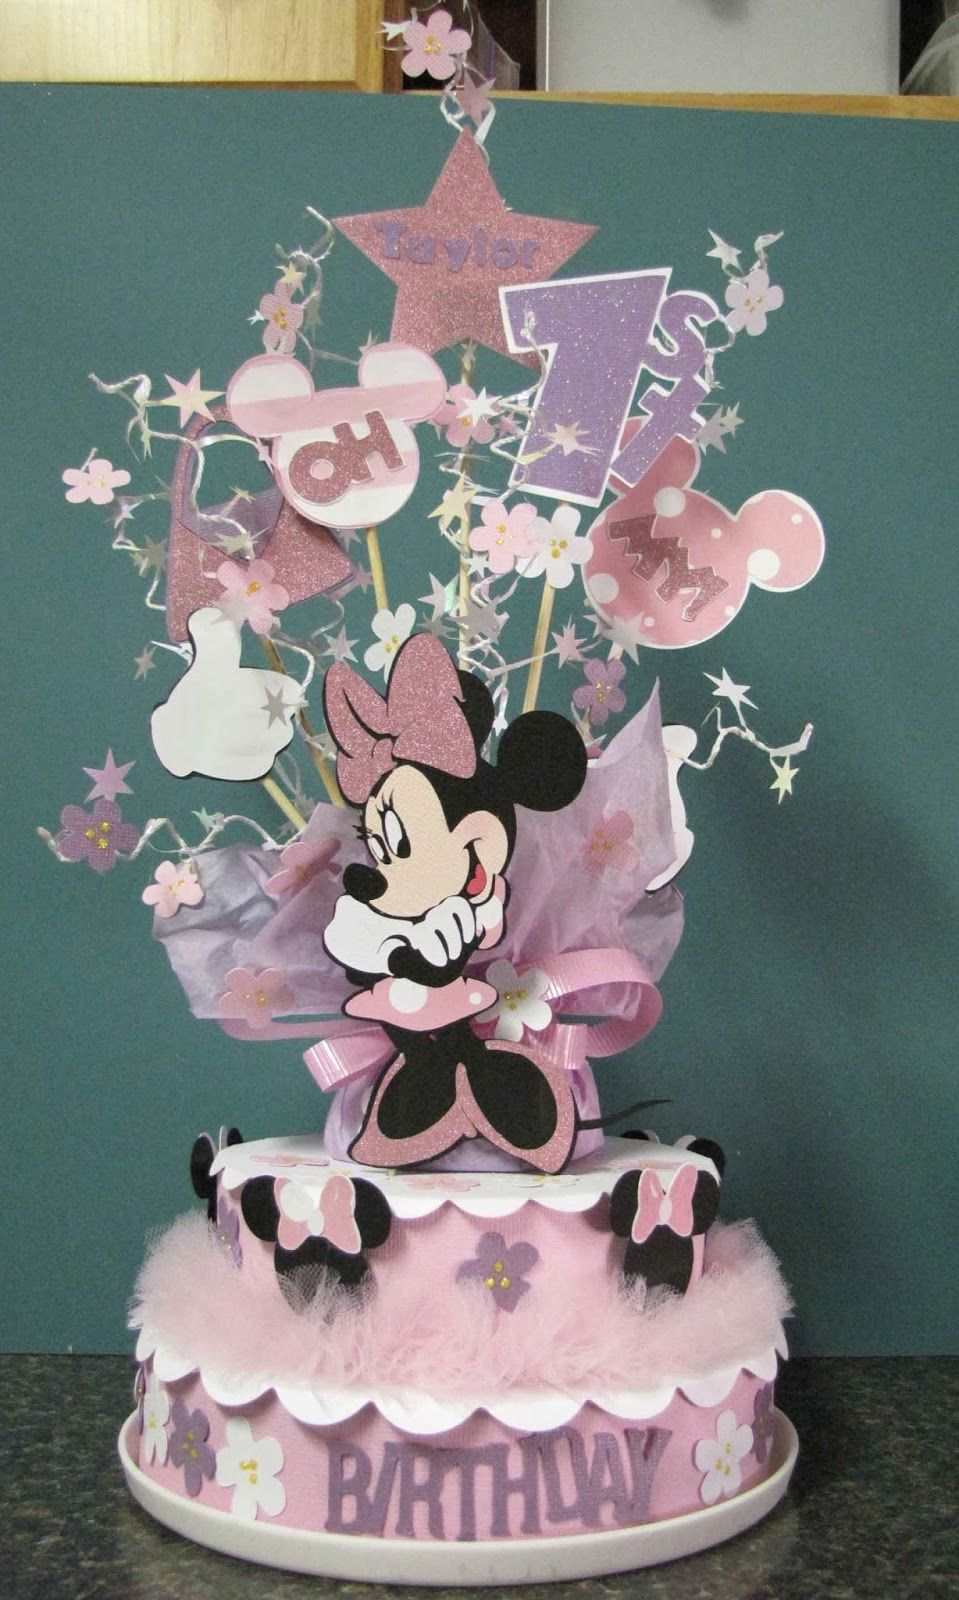 Mimis Craft Room Minnie Mouse Birthday Decoration for a cupcake